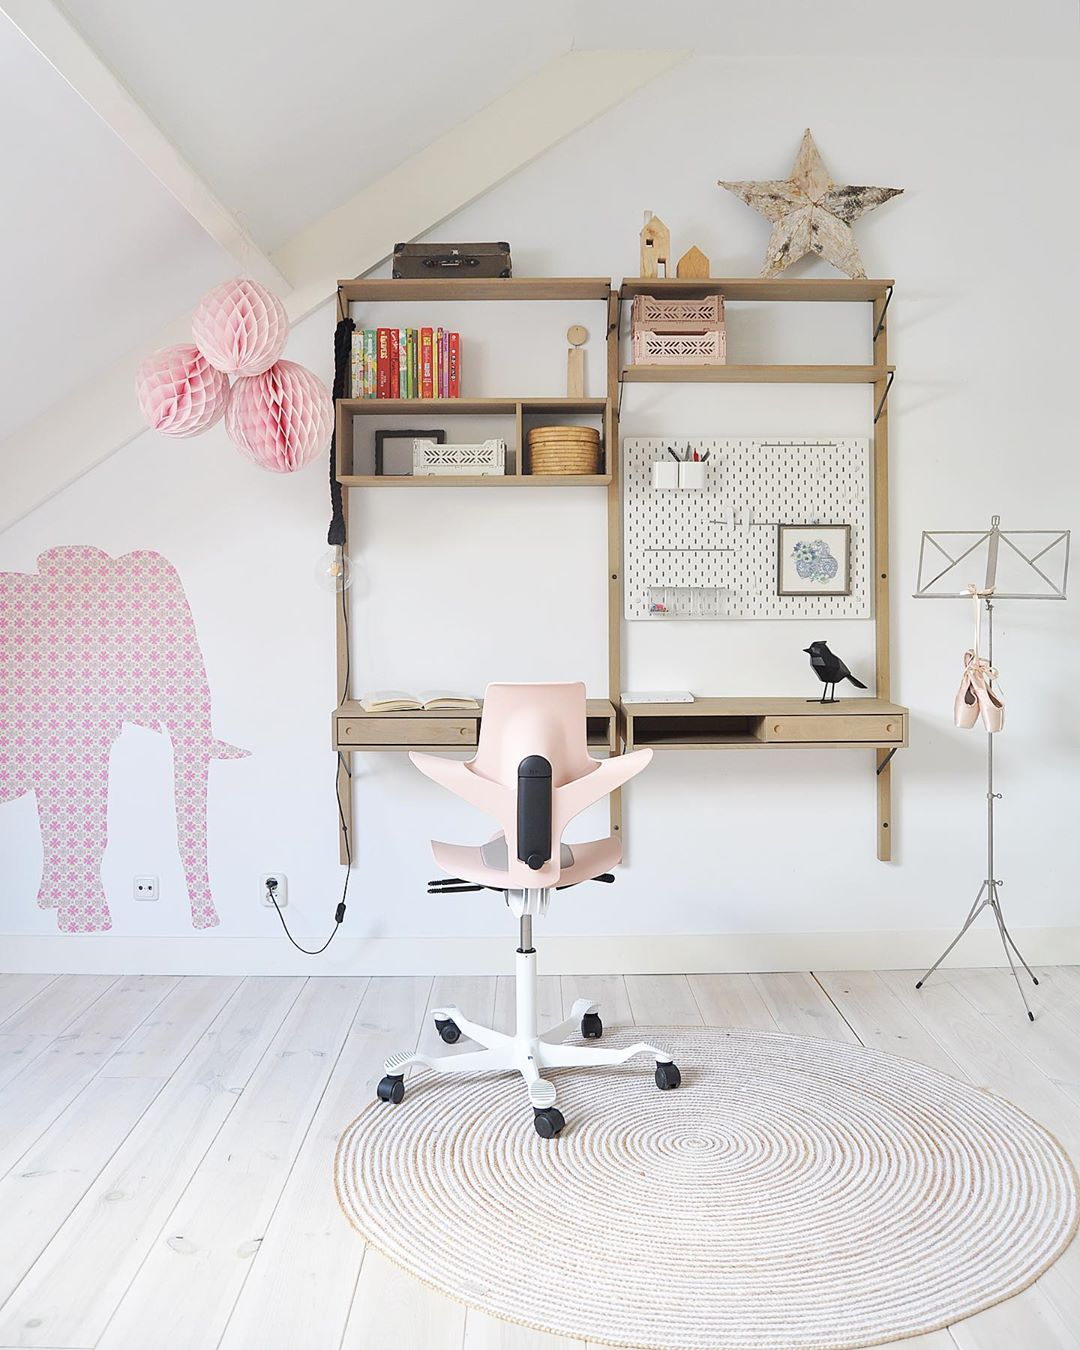 light and pink home office for children doing homework or studies with HÅG Capisco Puls chair at a wooden desk with pink elephant on the wall